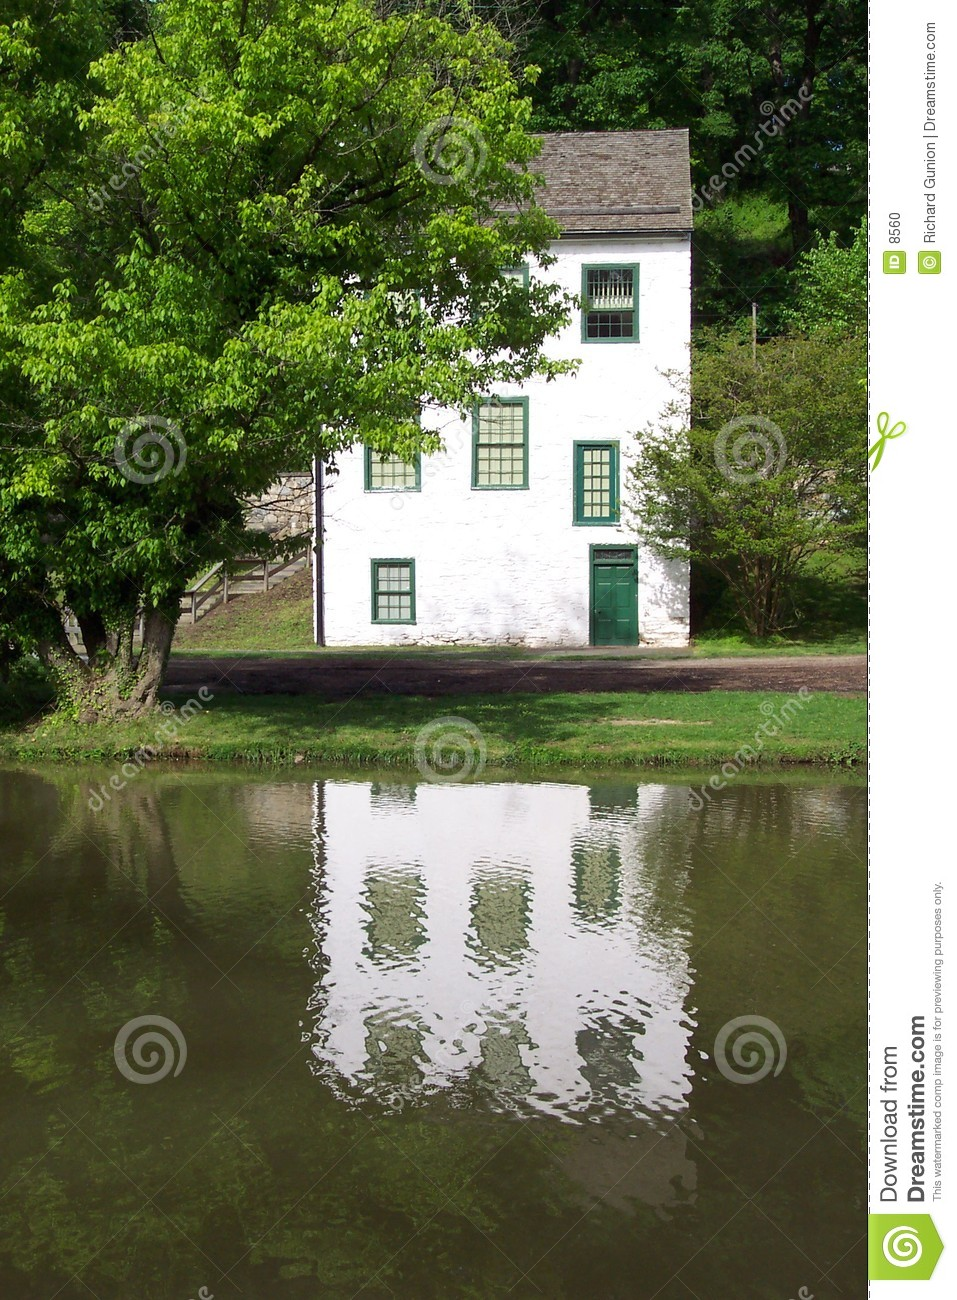 Le Boathouse de Fletcher